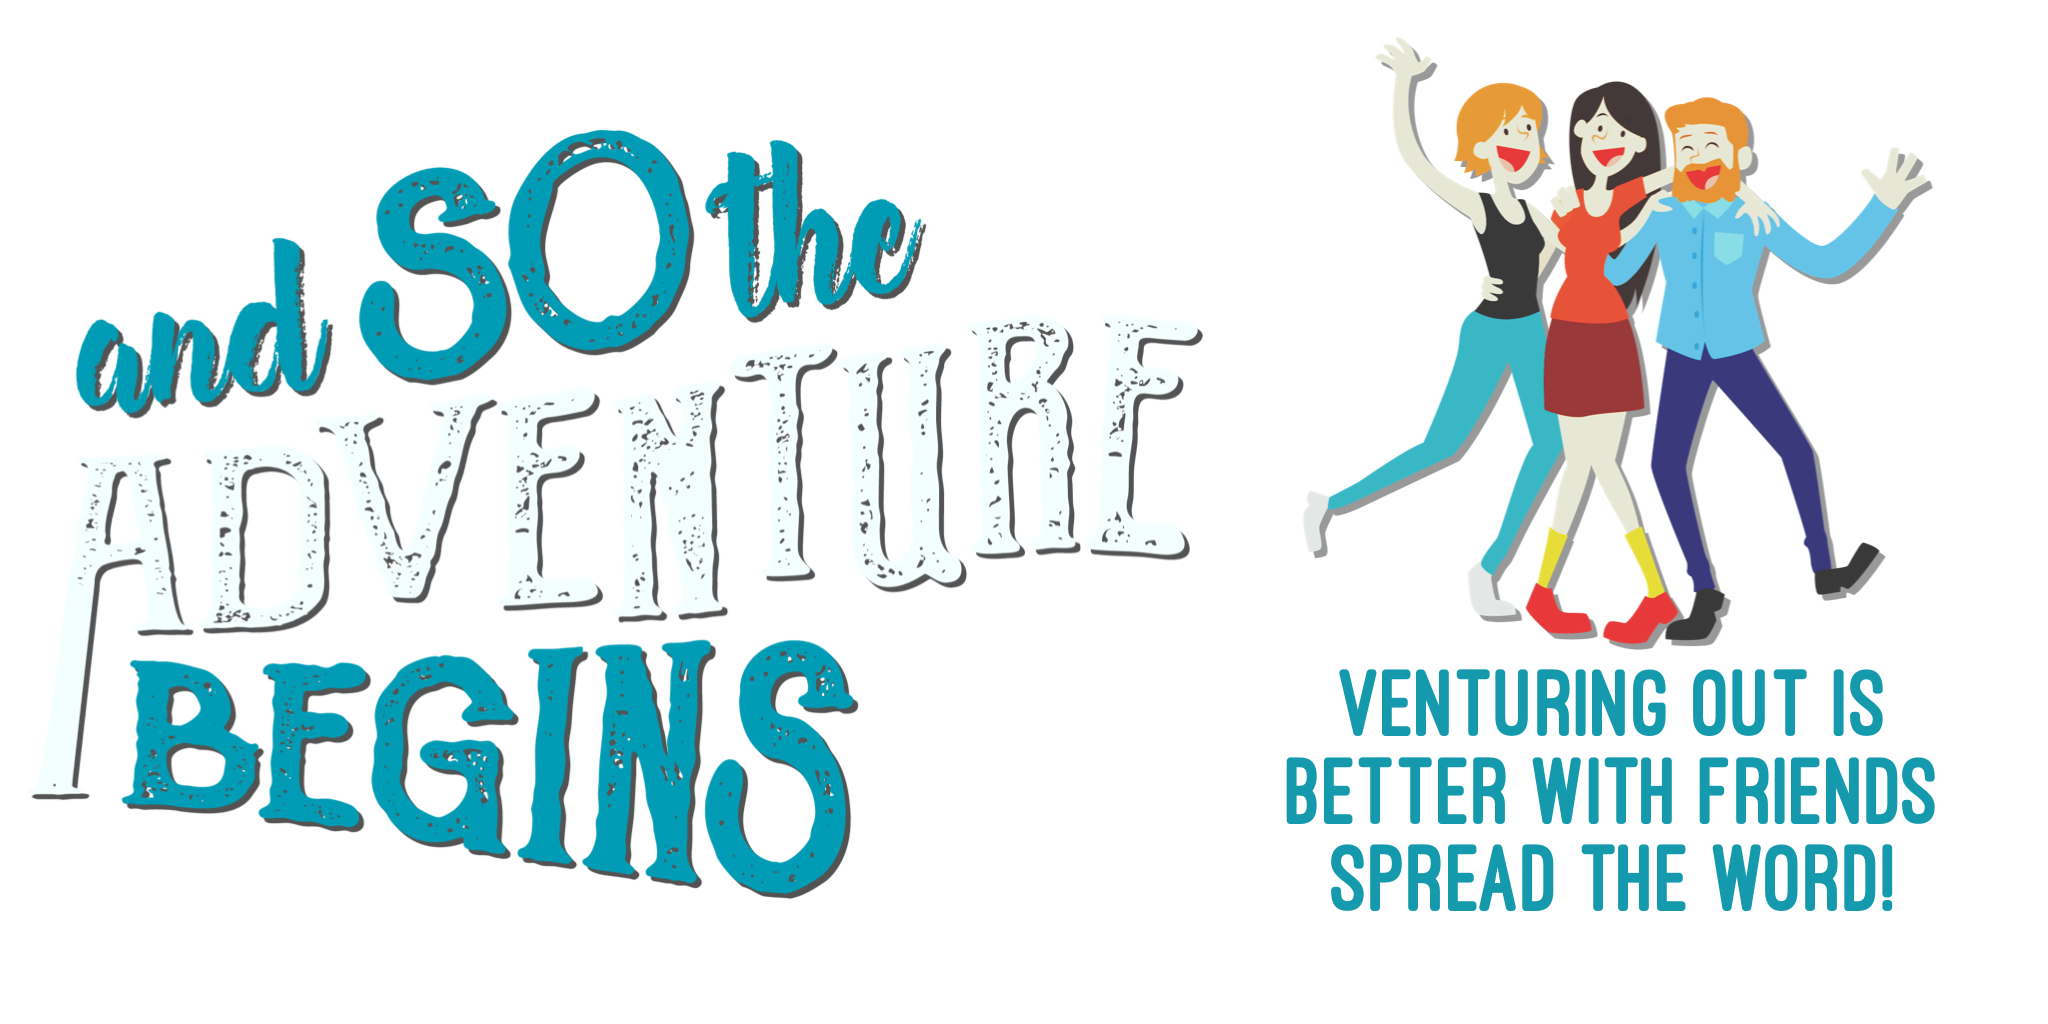 Spread the word about Venture Pass